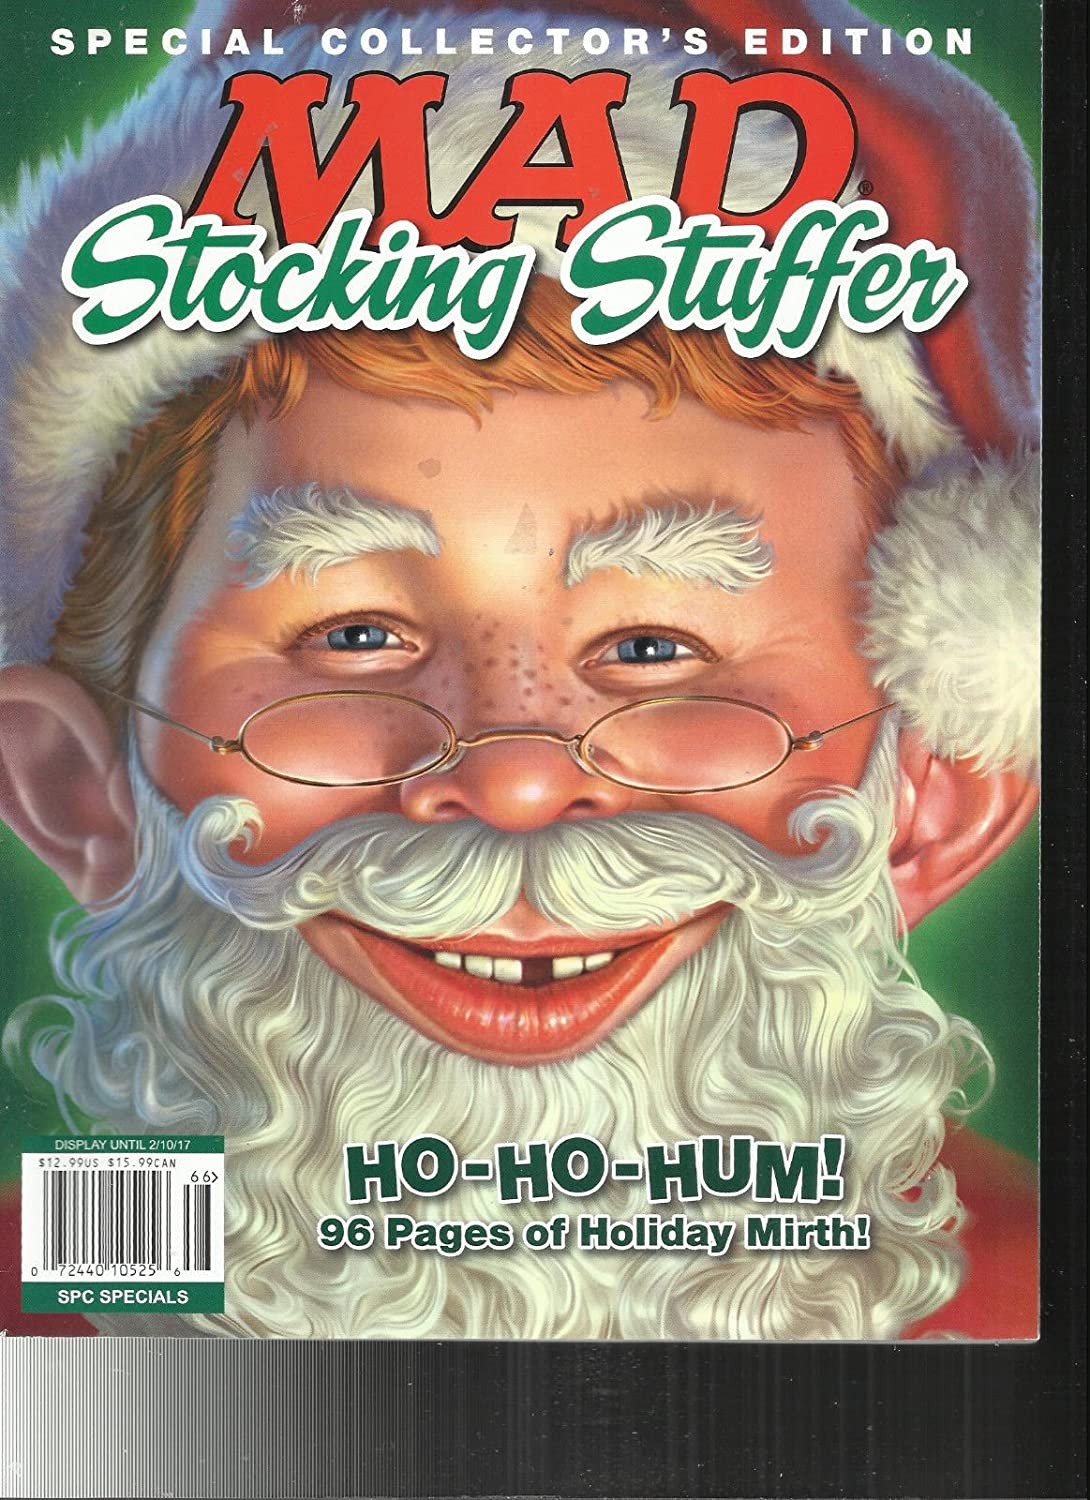 MAD STOCKING STUFFER MAGAZINE, SPECIAL COLLECTOR'S EDITION ISSUE, 2017 SPECIAL COLLECTOR'S EDITION ISSUE s3457